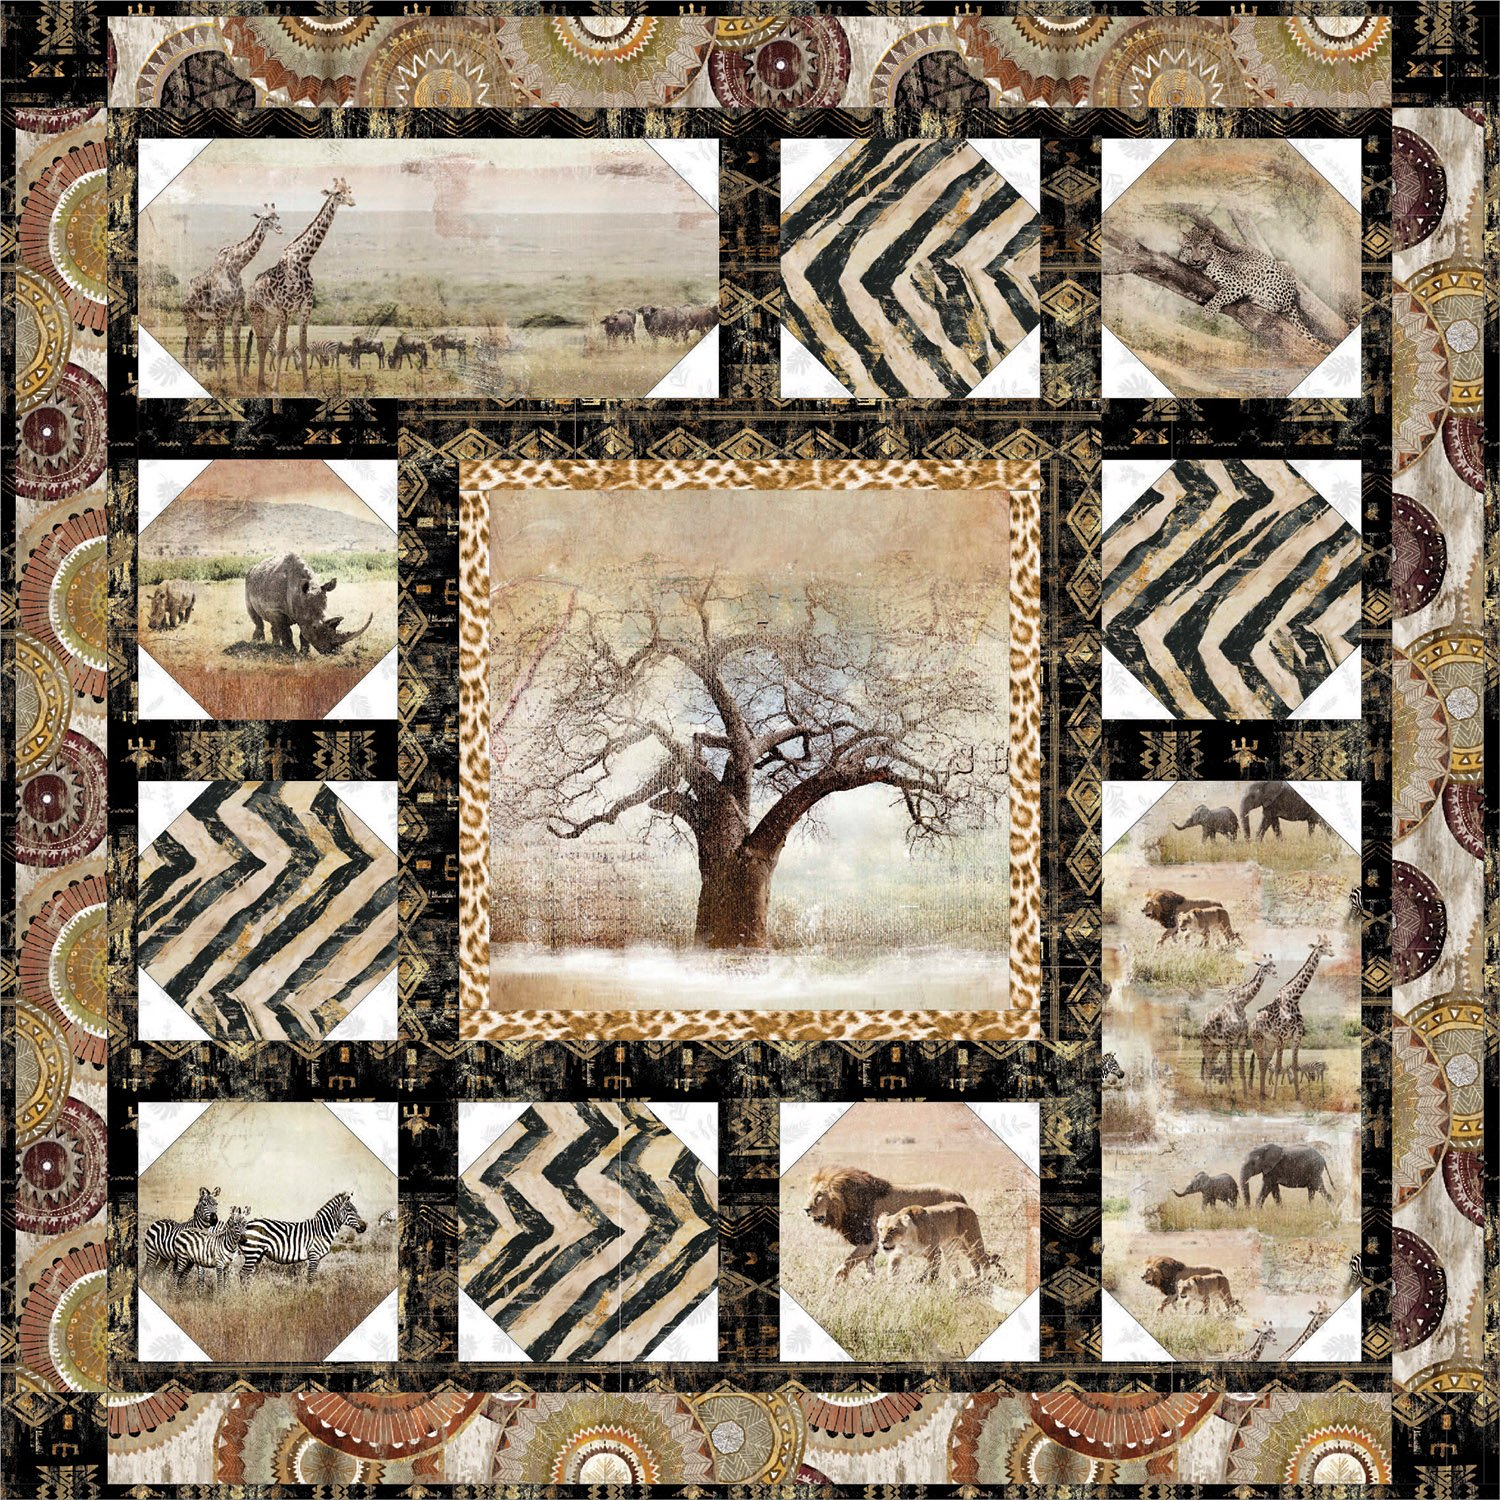 GLobal Luxe African Quilt Kit from Creations